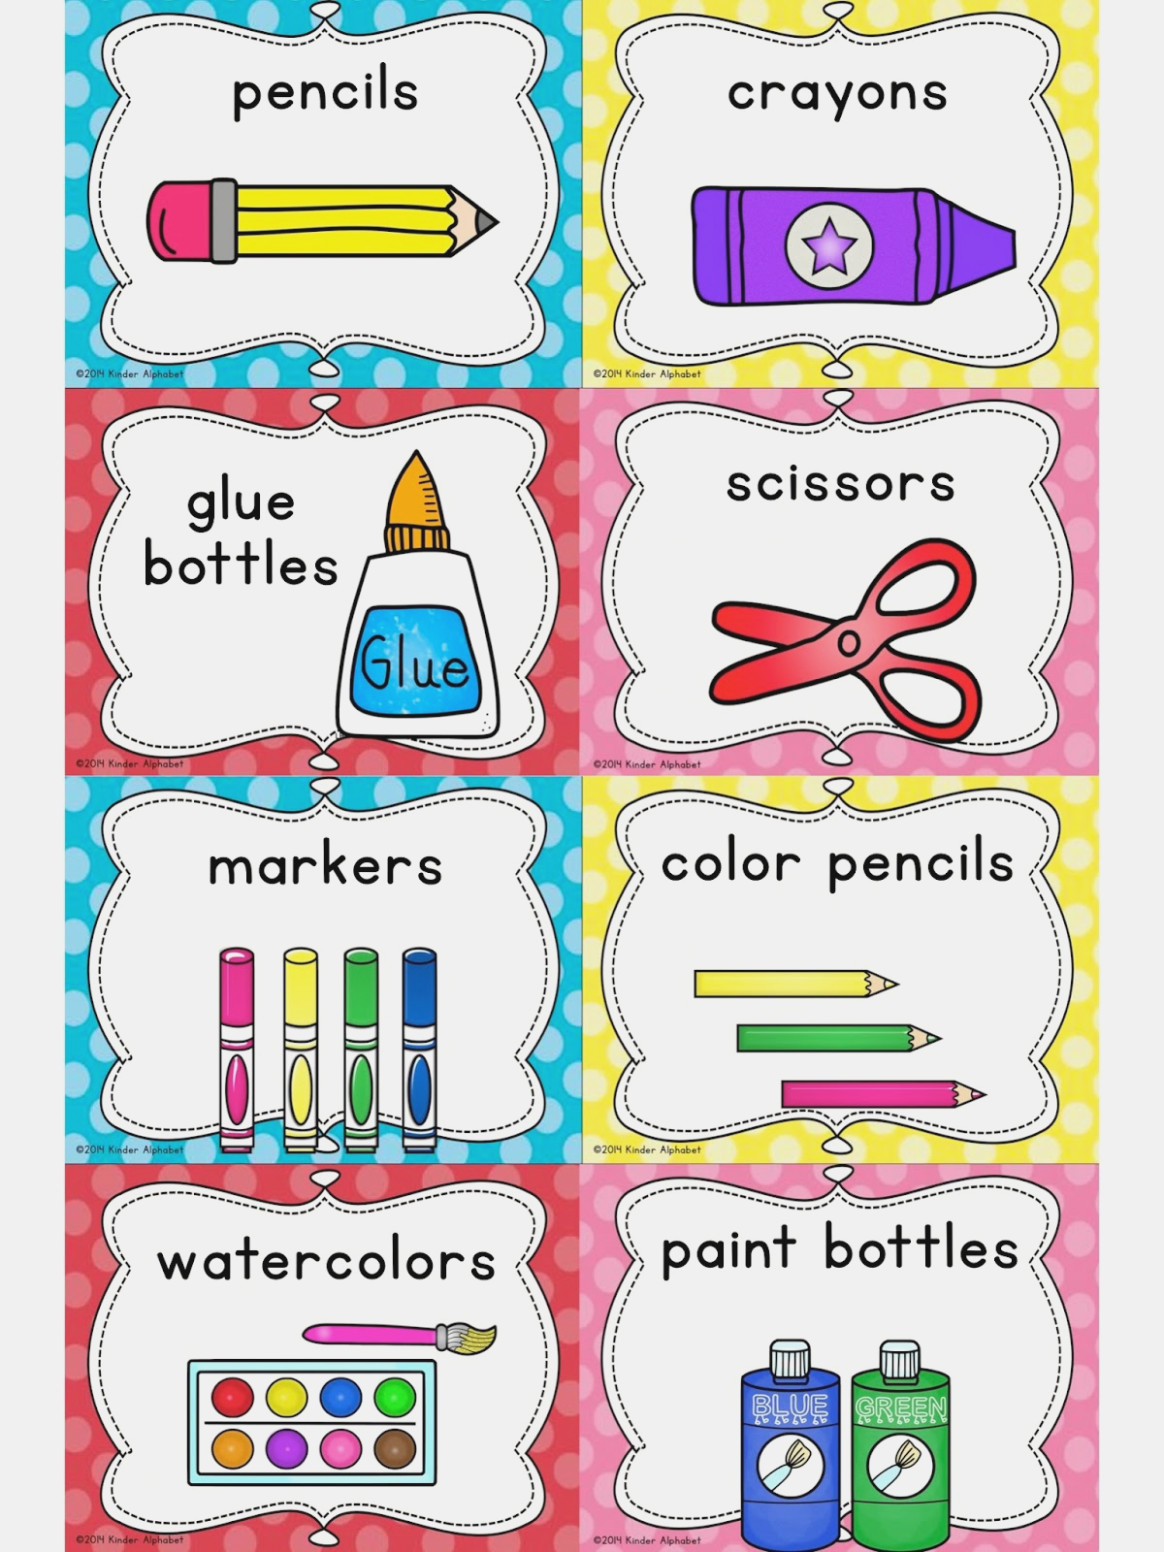 Free Printable Classroom Signs And Labels – Uma Printable – Free - Free Printable Classroom Signs And Labels